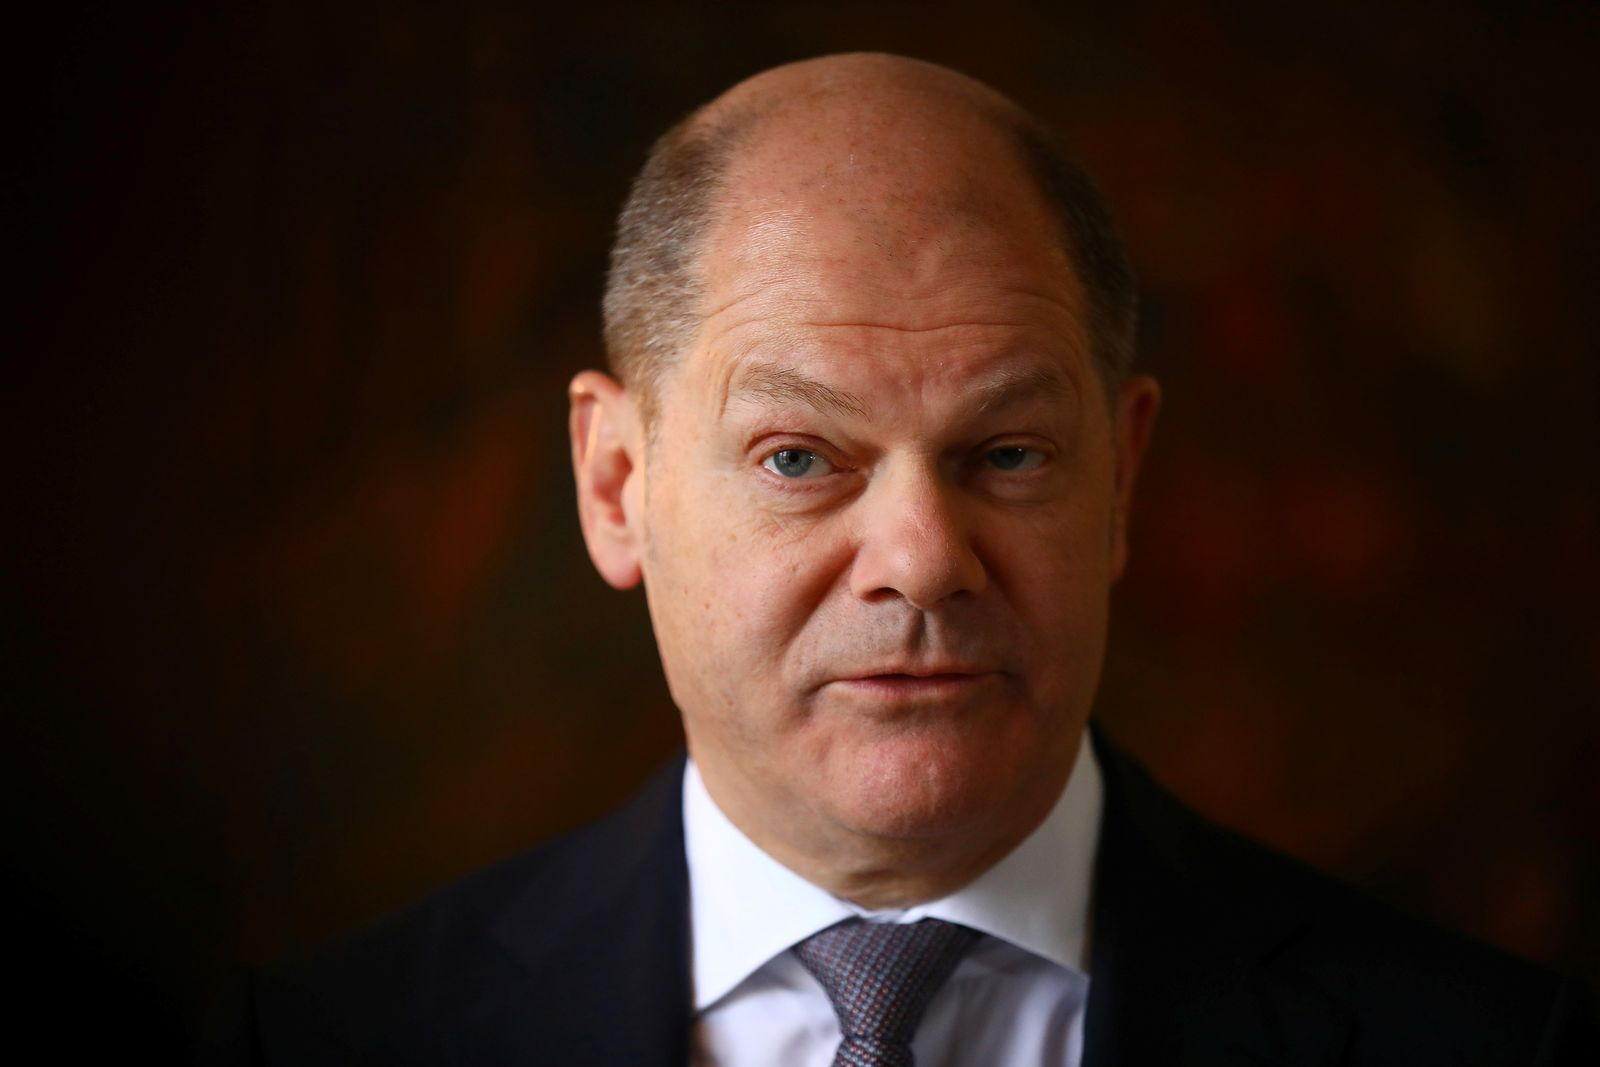 German Finance Minister Olaf Scholz attends a Reuters interview in Berlin